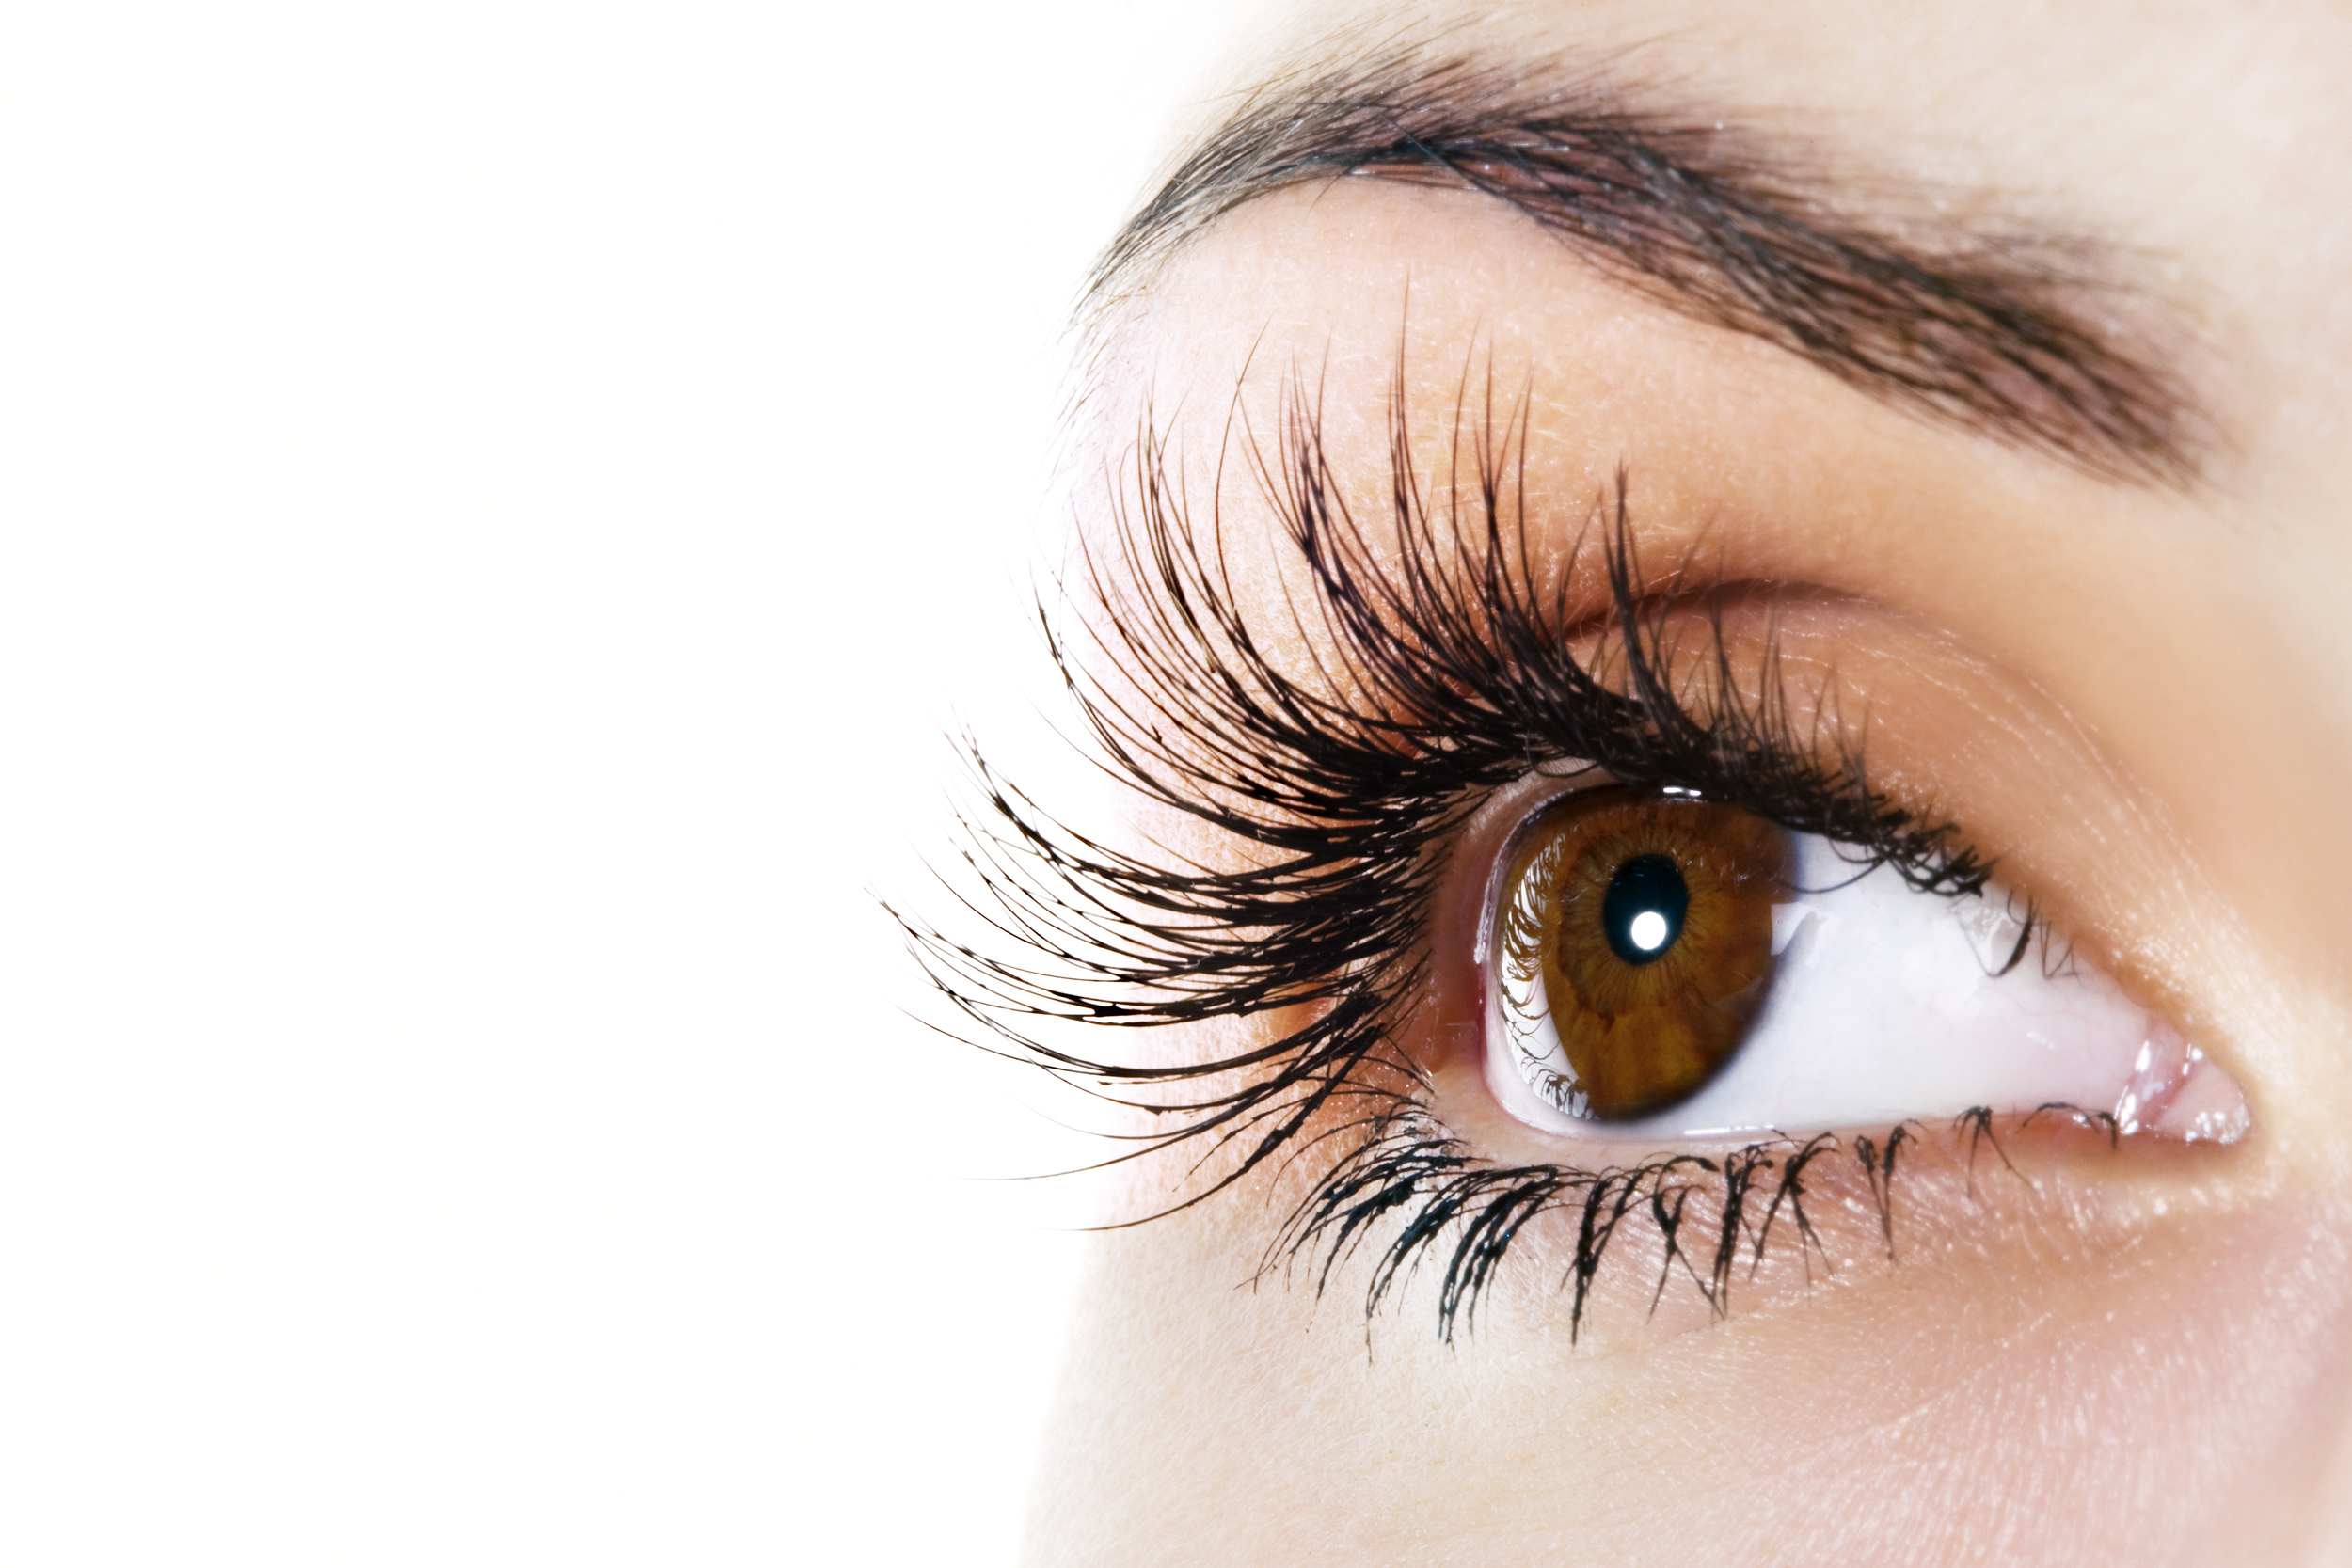 PERMANENT MAKEUP & LASH EXTENSIONS